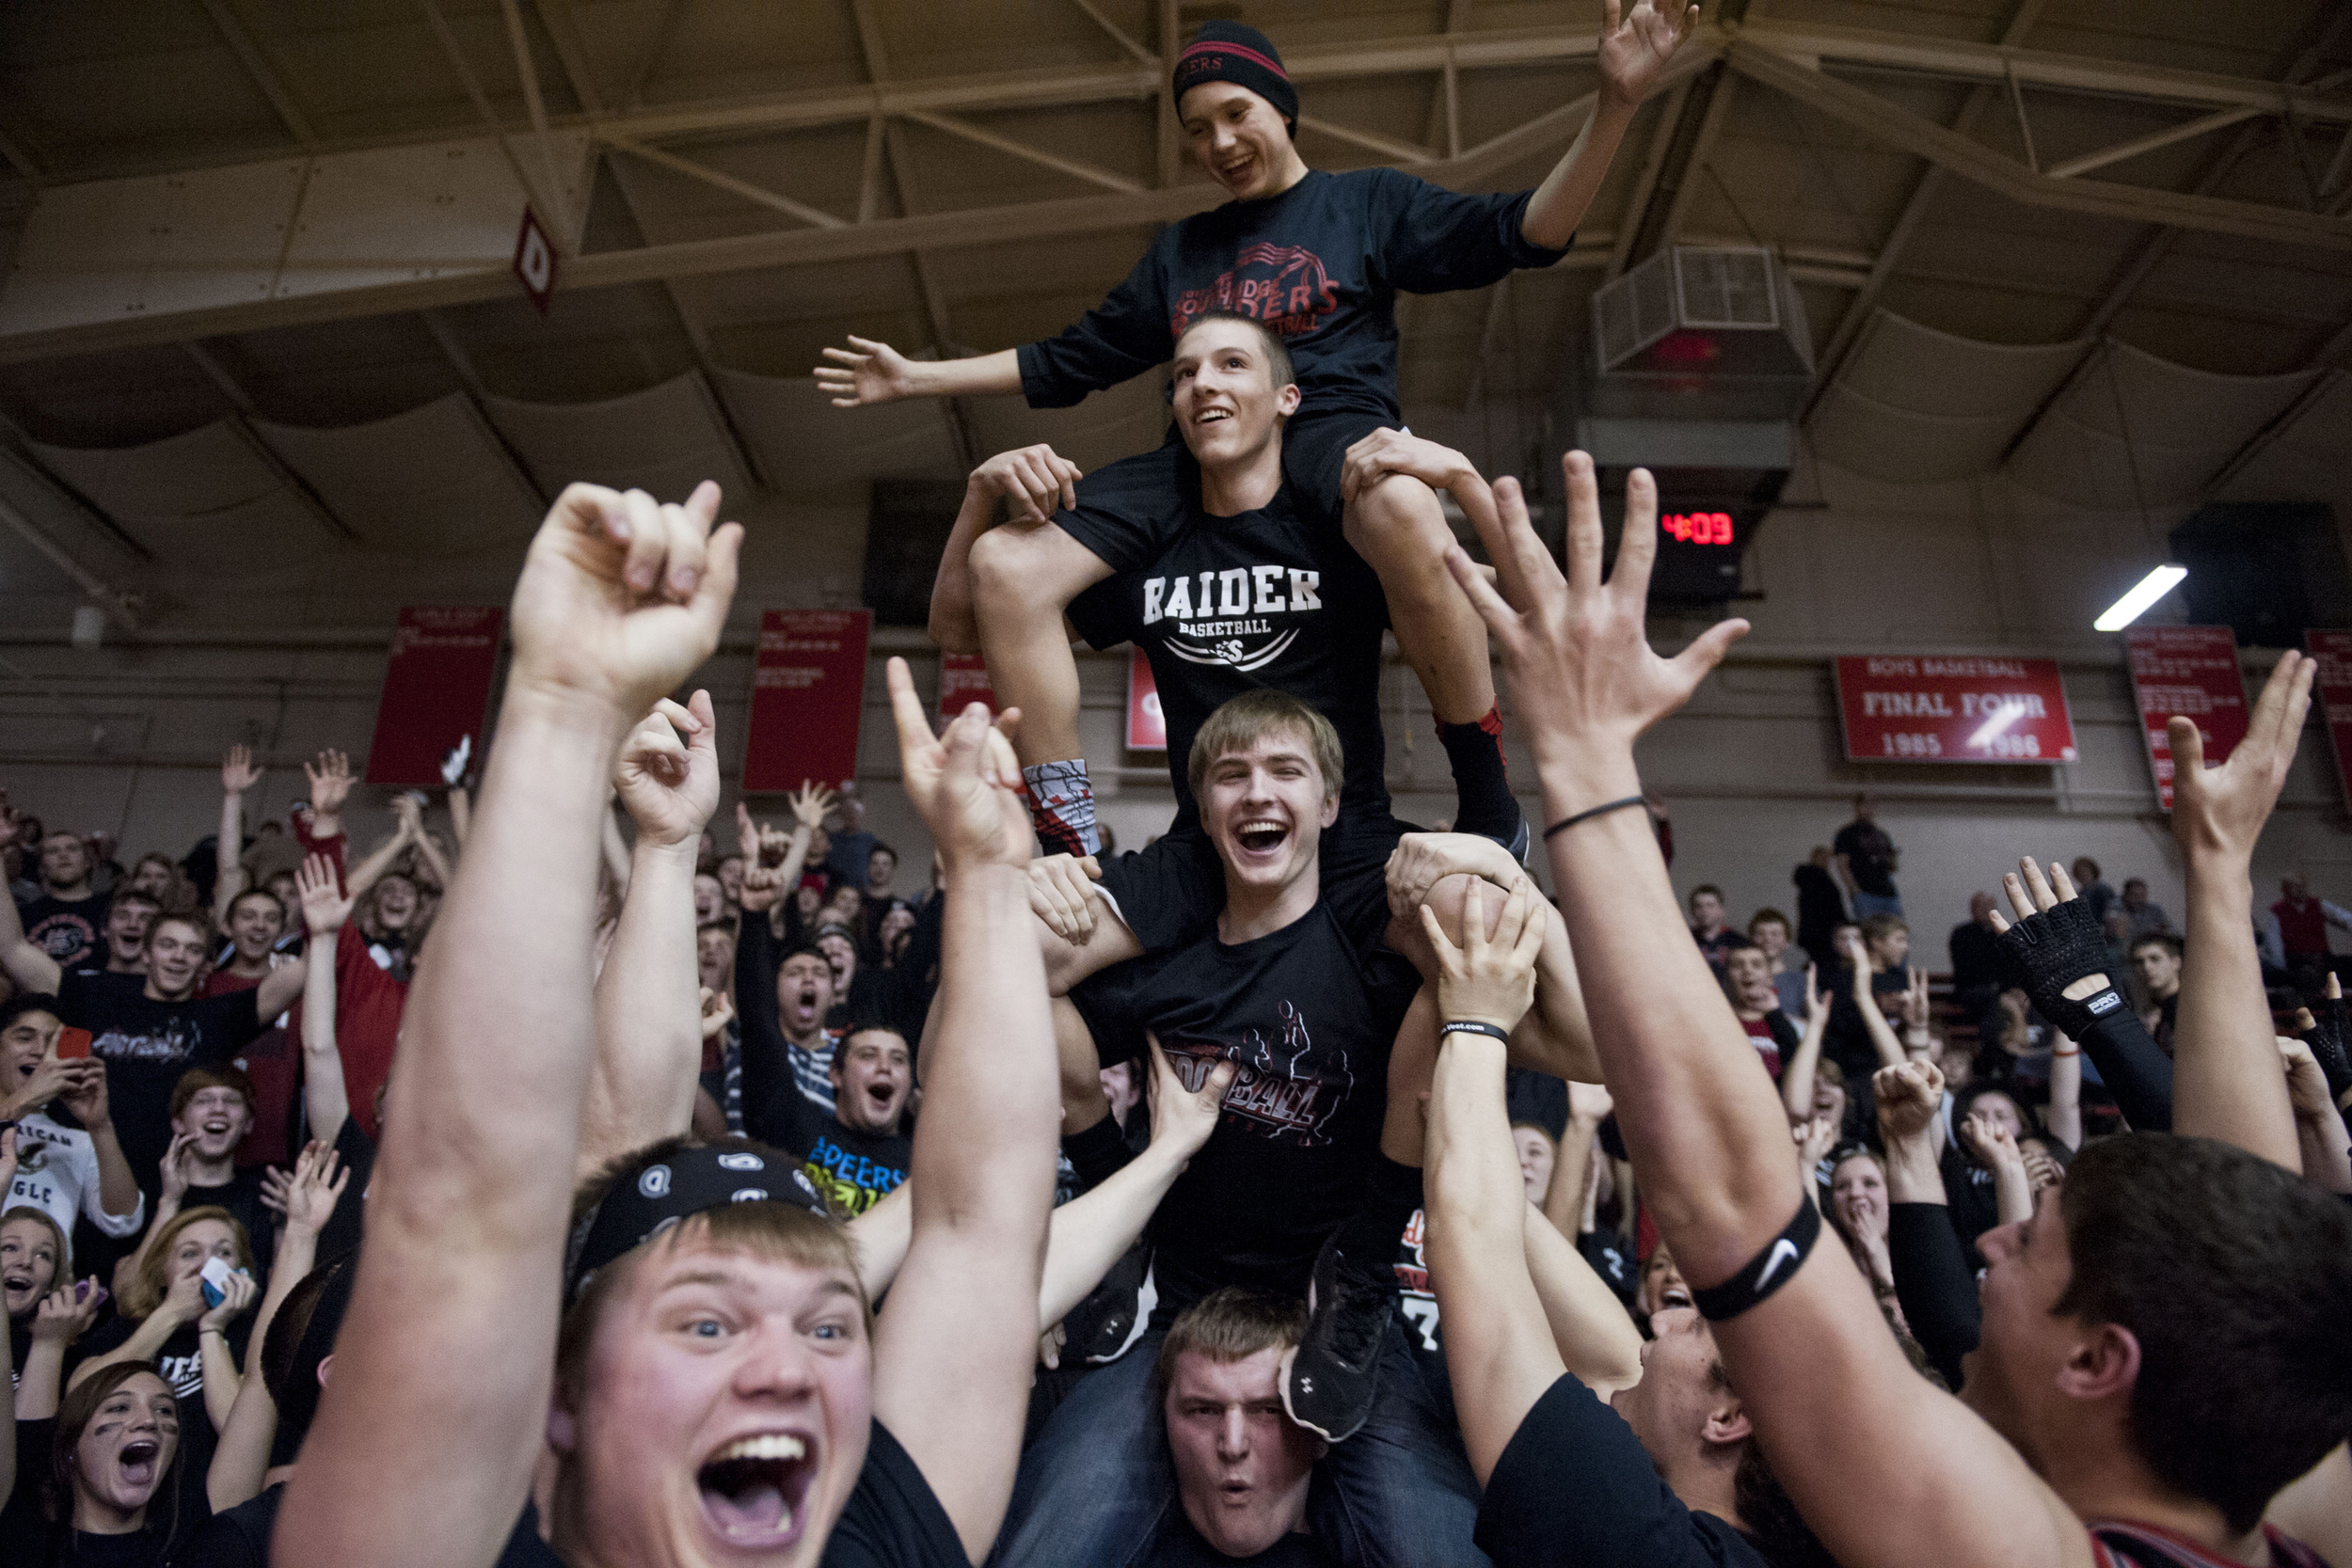 Southridge senior Ethan Schwoeppe, bottom, Luke Stetter, junior, Drew Dearing, freshman, and Braden Harding, freshman, stacked on top of each other and cheered for the Raiders during halftime of their game against Washington in the IHSAA Class 3A sectional tournament in Huntingburg, IN on Wednesday.  The Raiders lost 41-35.